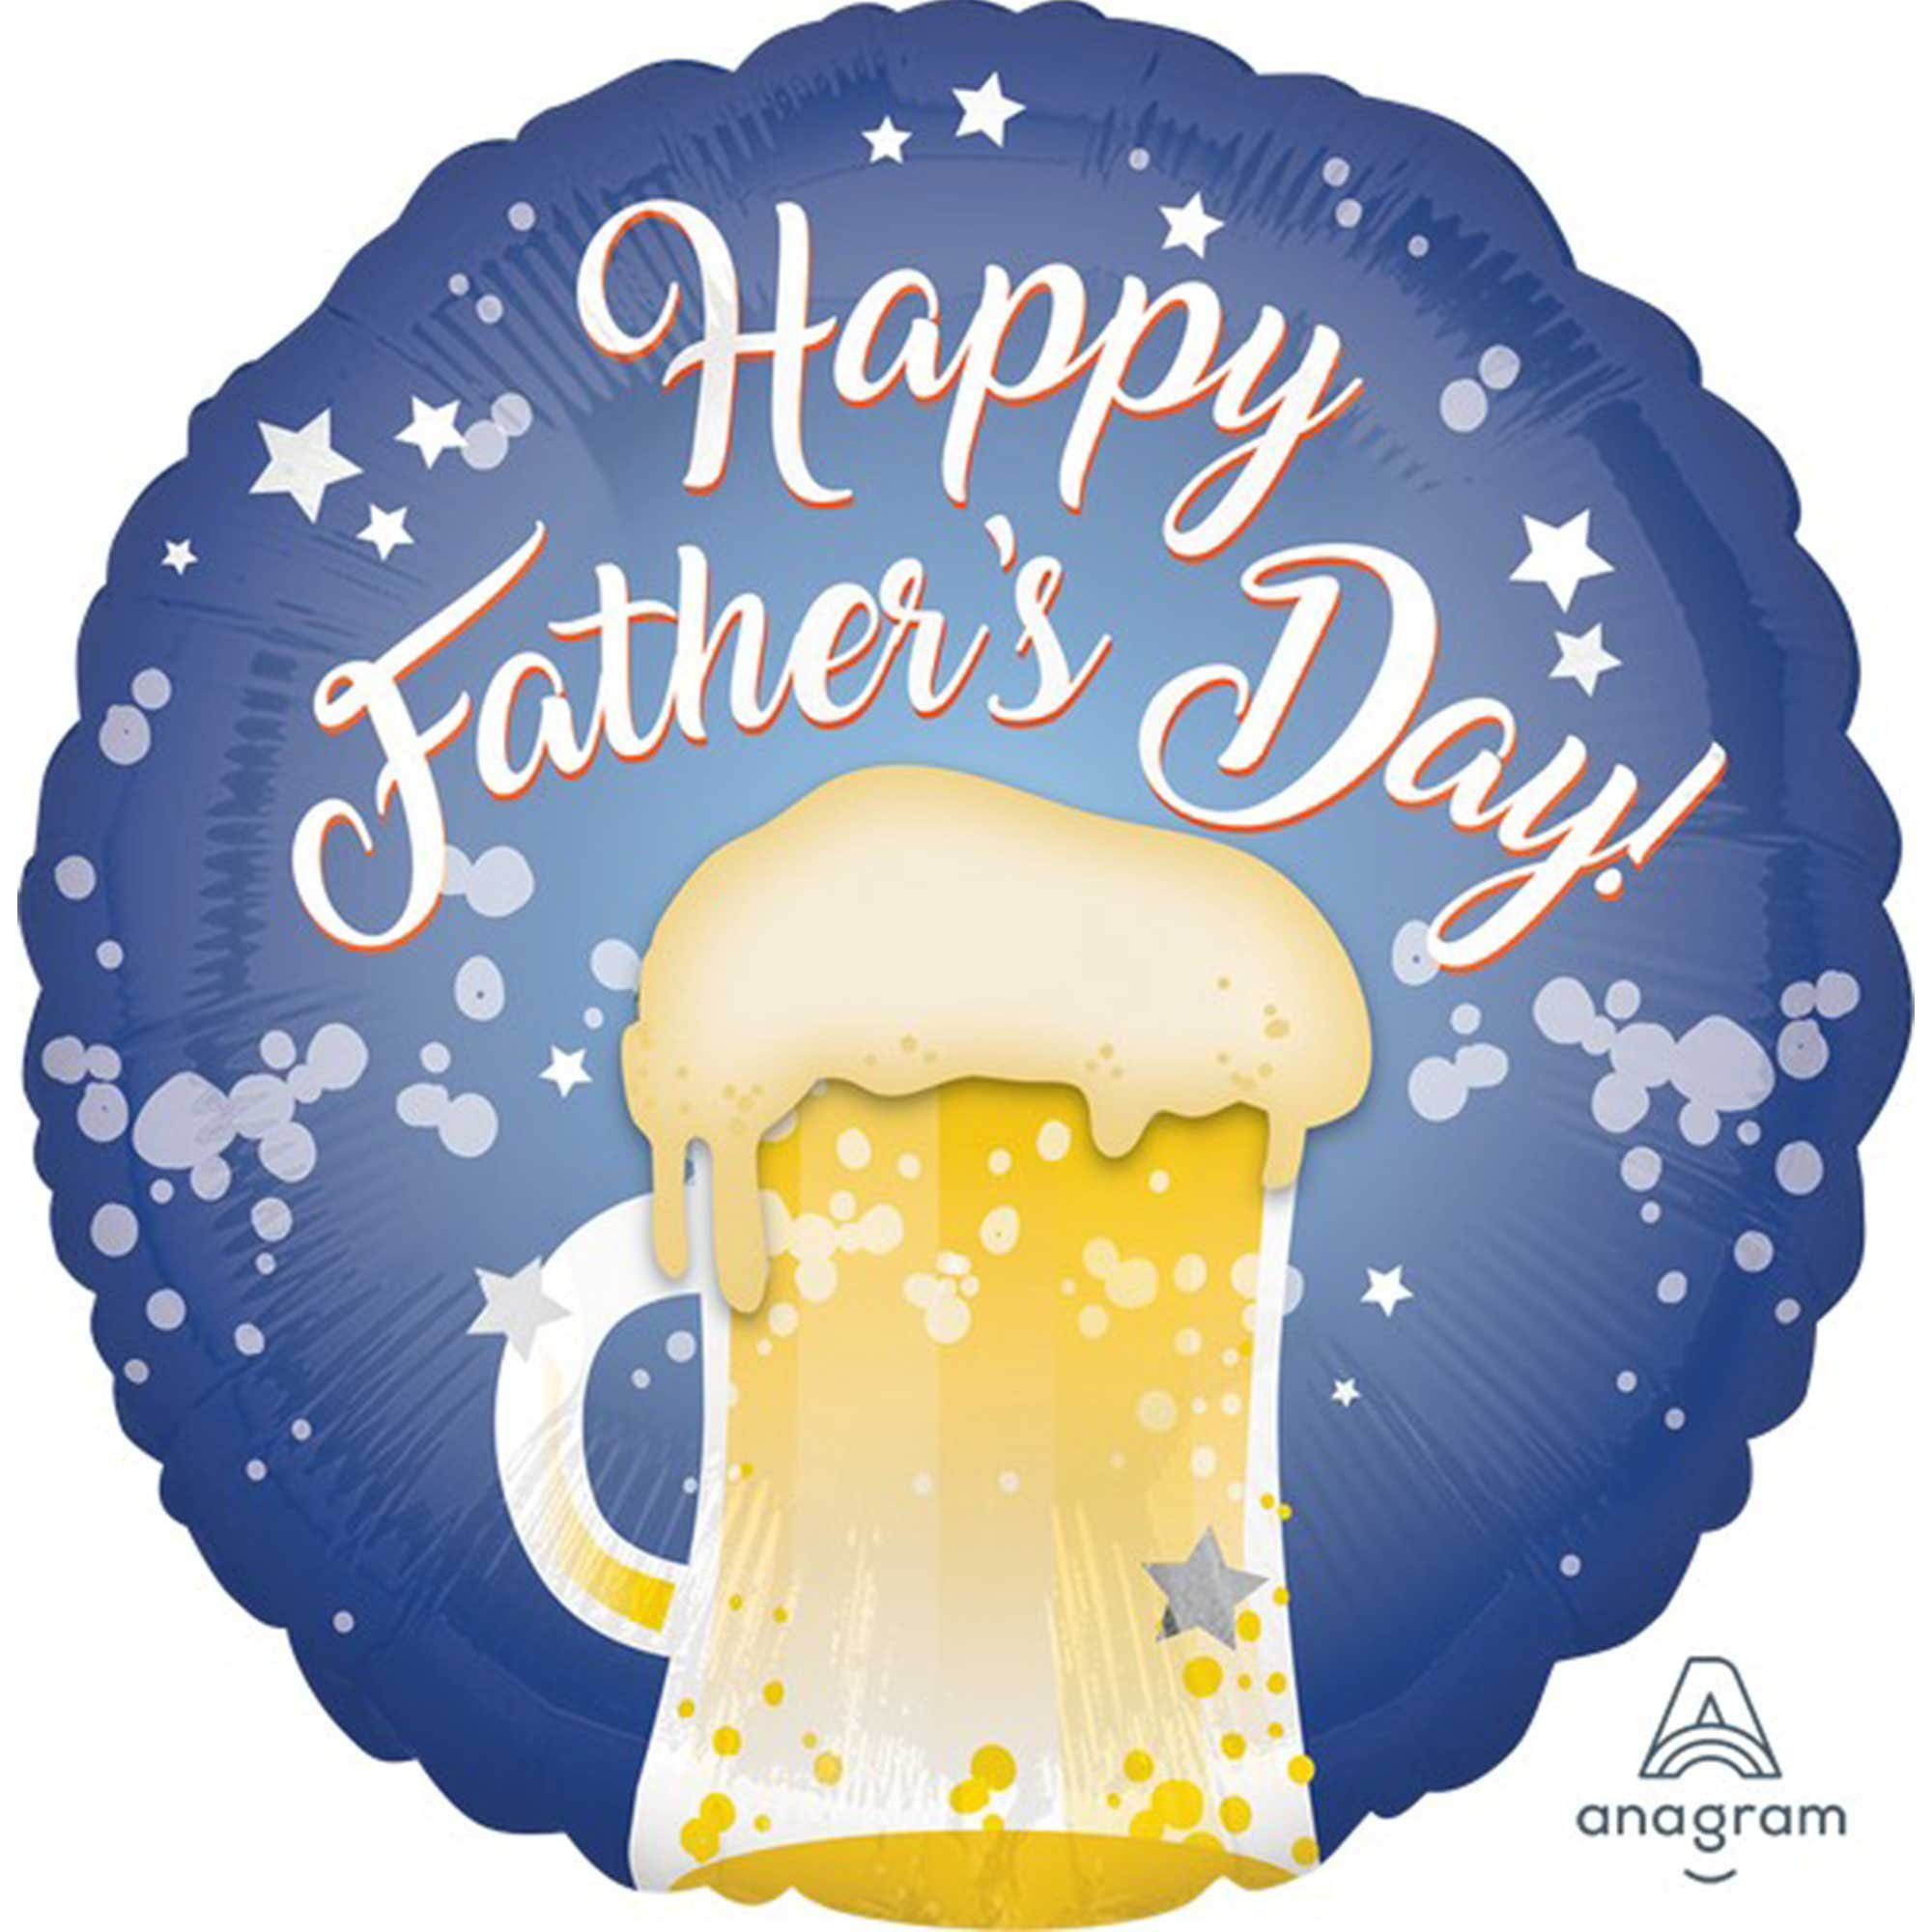 45cm Standard HX Happy Fathers Day Beer Mug S40